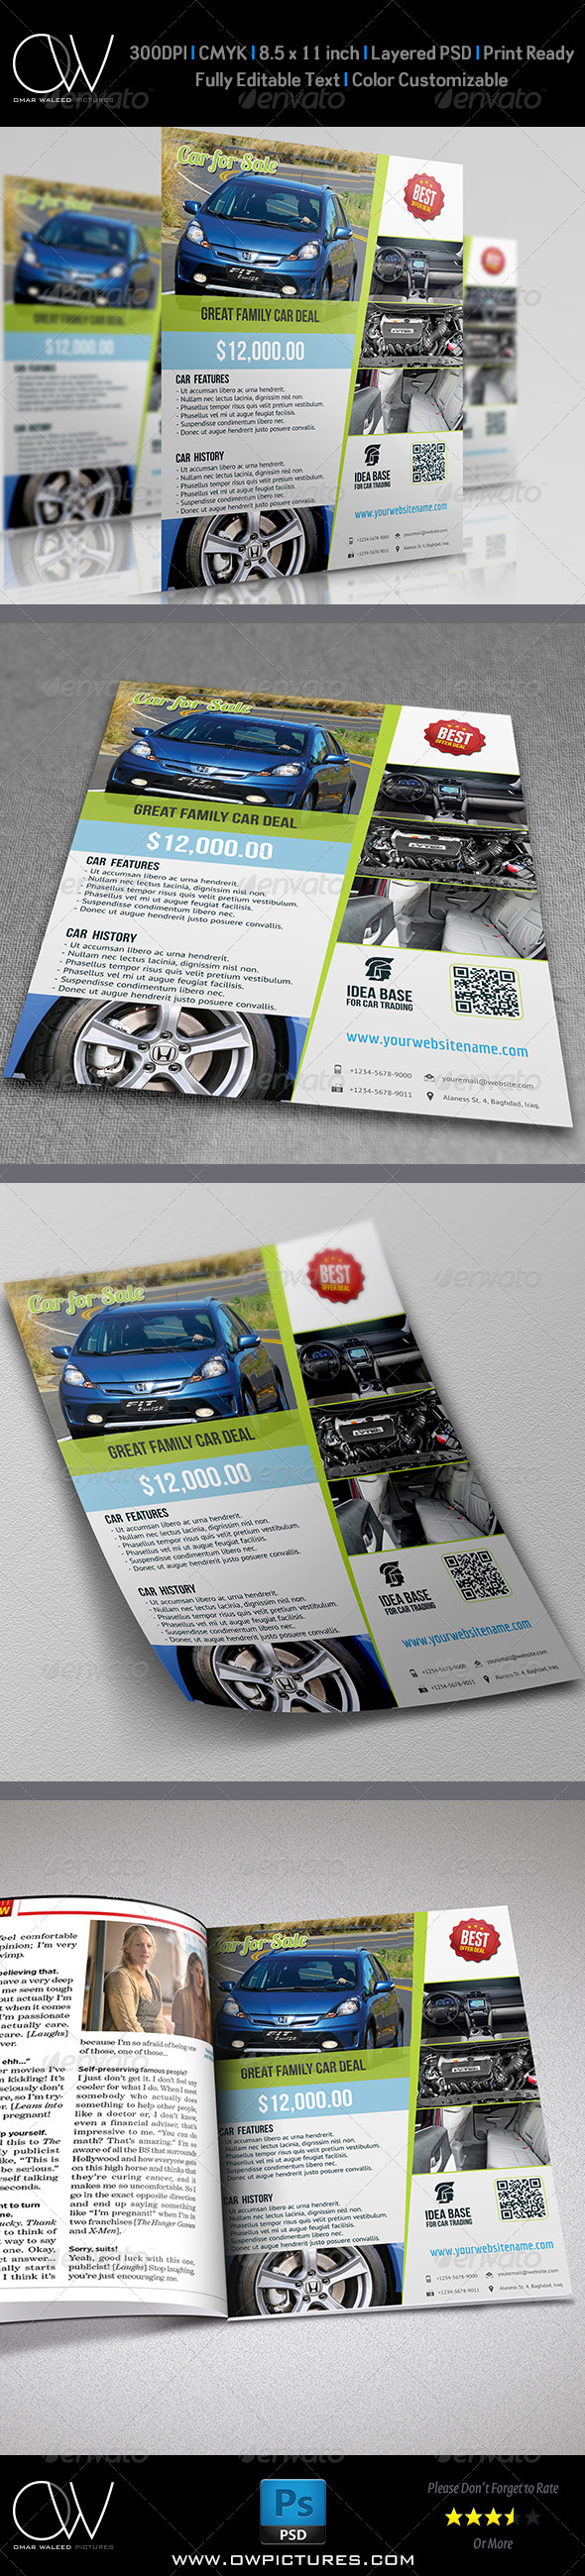 Car for Sale Flyer - Corporate Flyers